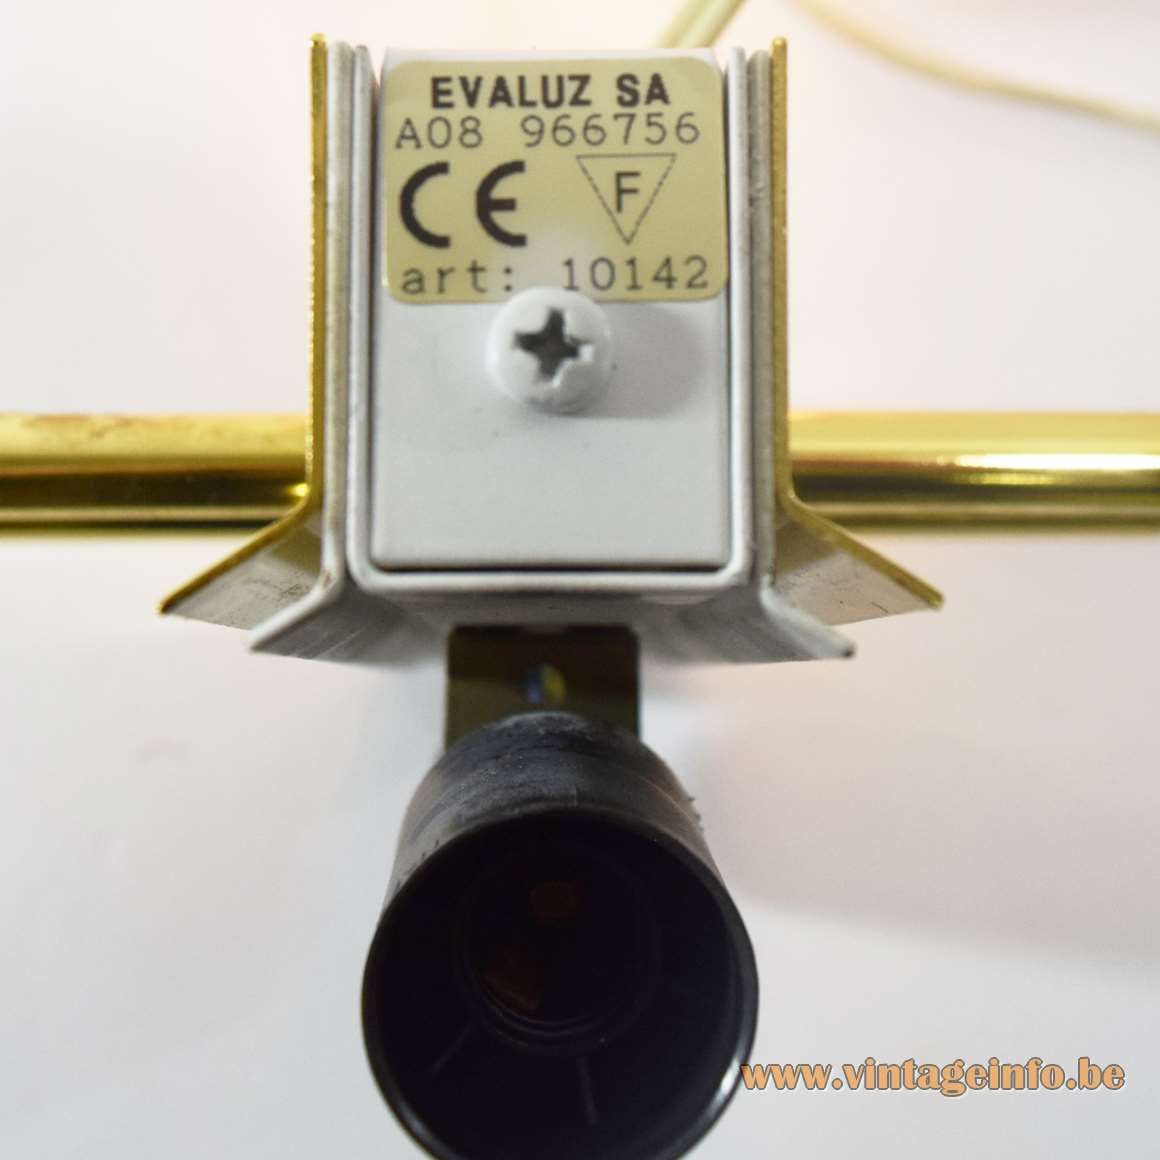 Evaluz Arriba Wall Lamps - Label